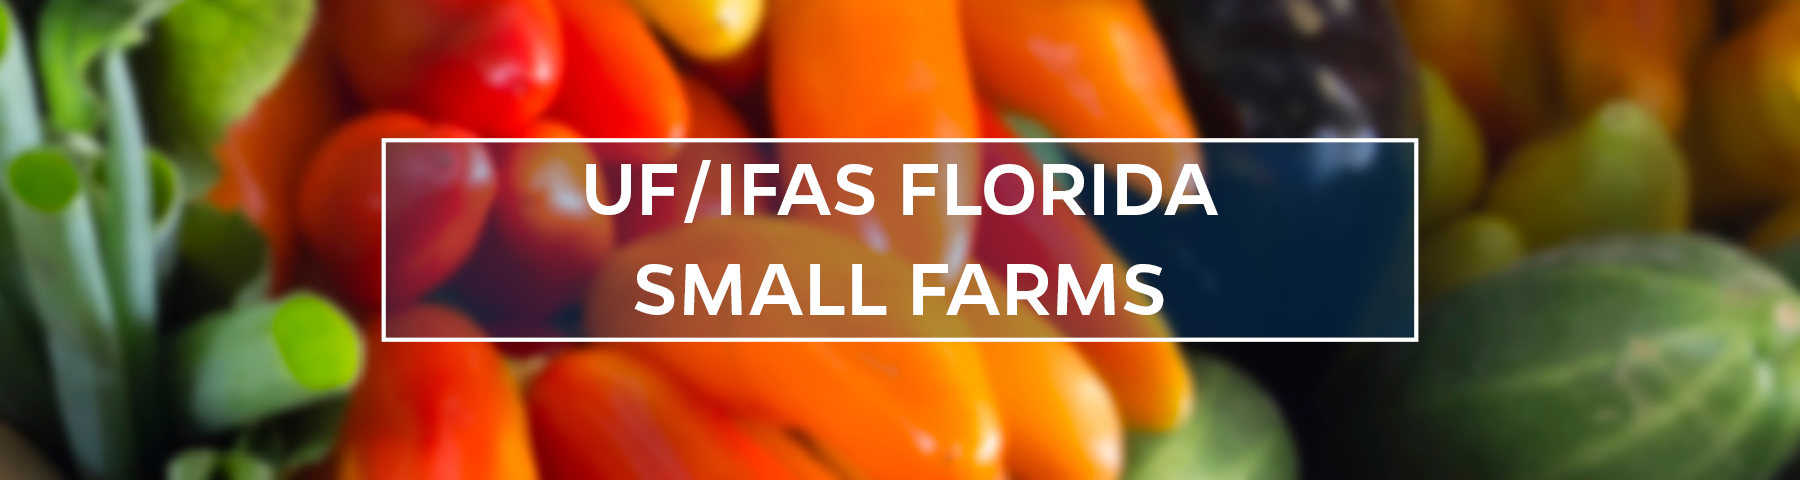 UF/IFAS Florida Small Farms